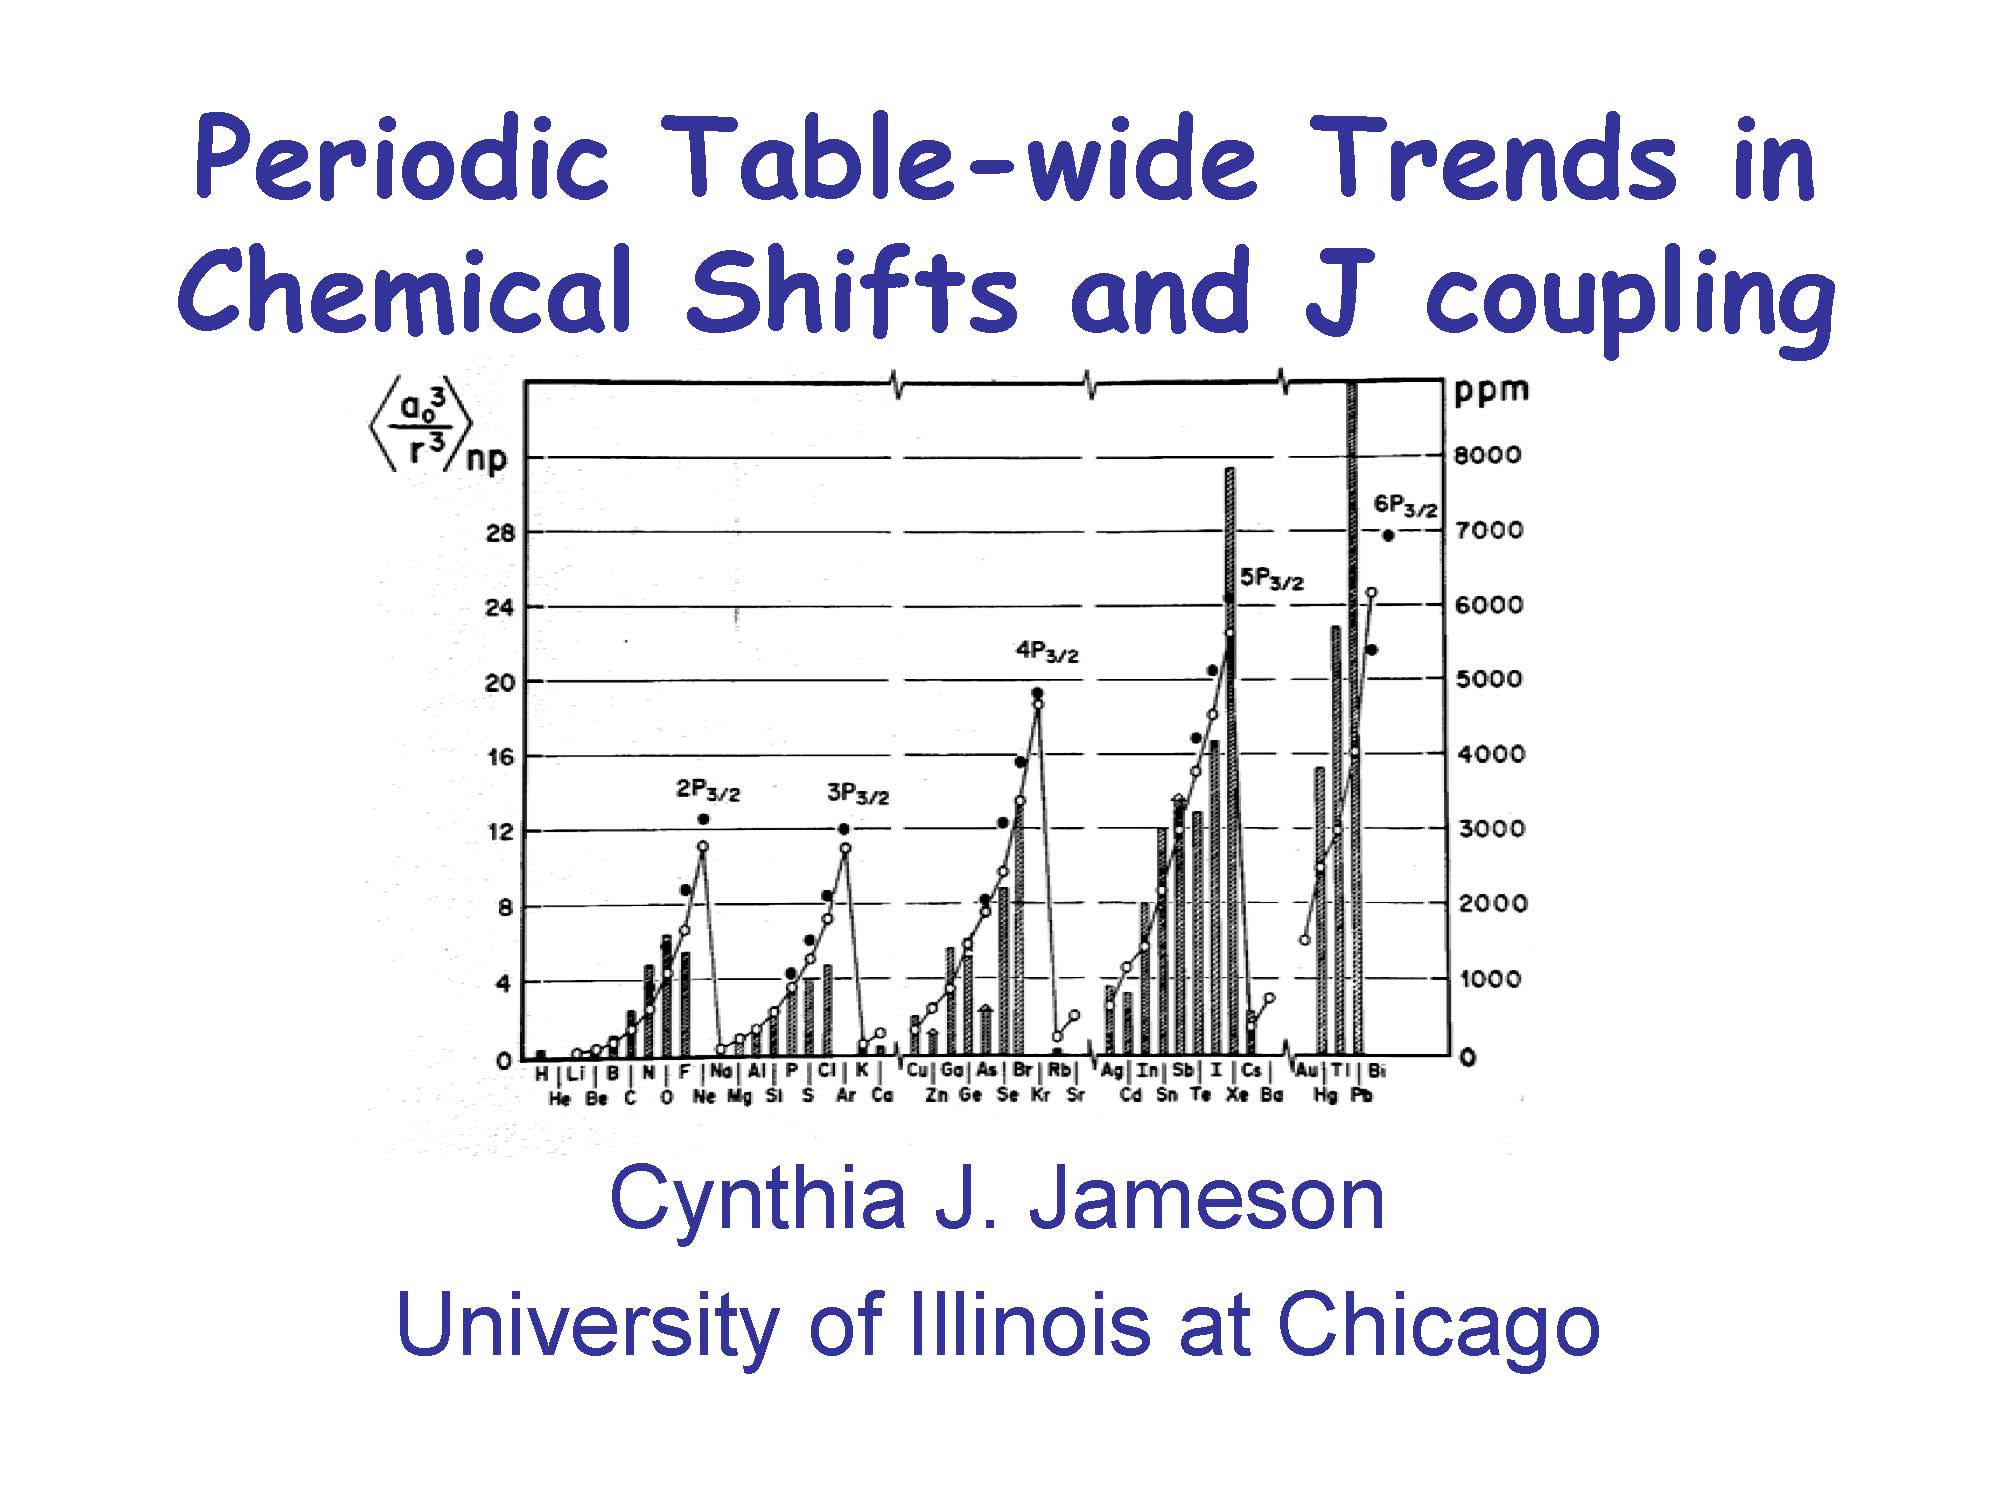 Periodic-Table-wide trends in shielding and J